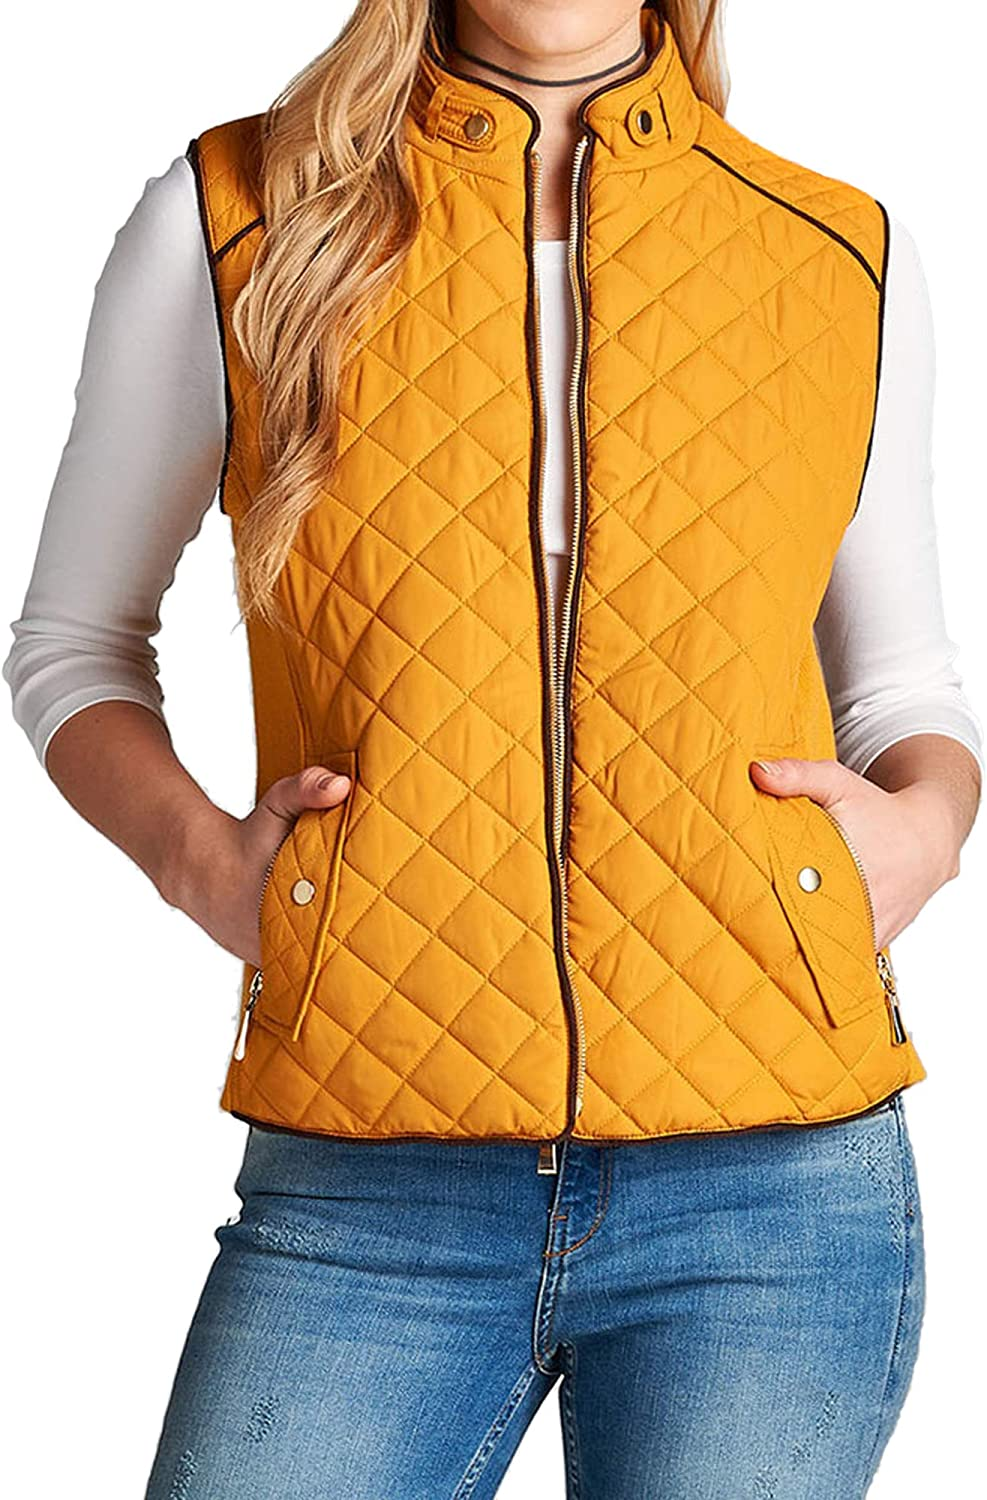 ACTIVE BASIC Women & Juniors Quilted Padding Lightweight Vest Jacket with Suede Pipping Details and Side Pockets